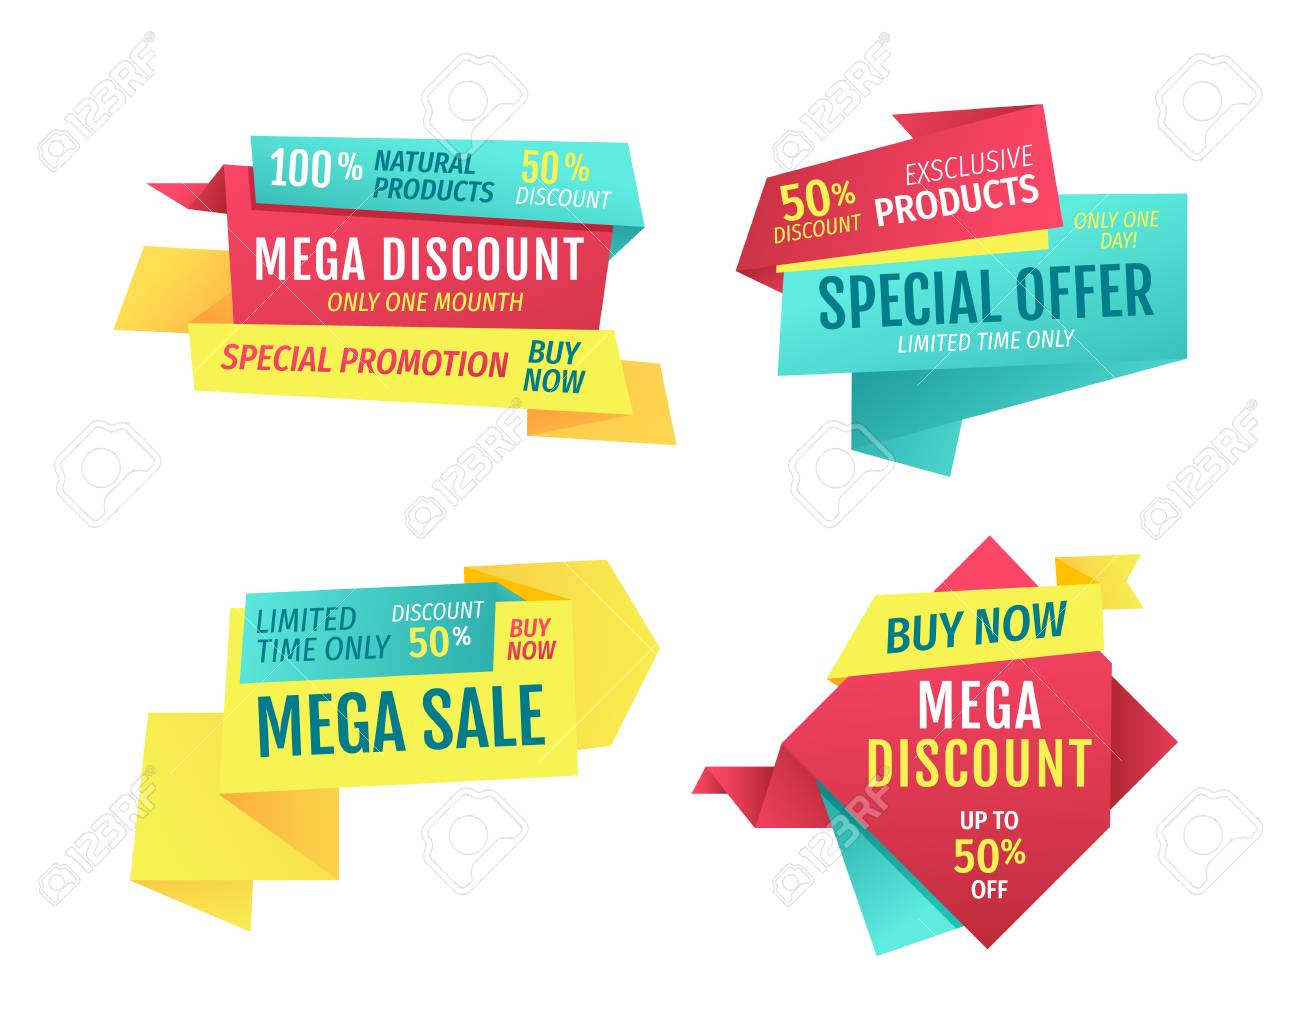 Special offer banners set, vector advertising. Discounts and promotions just month, premium quality, exclusive products only one day. Buy now touting title for super sale in limited time poster - 127221912